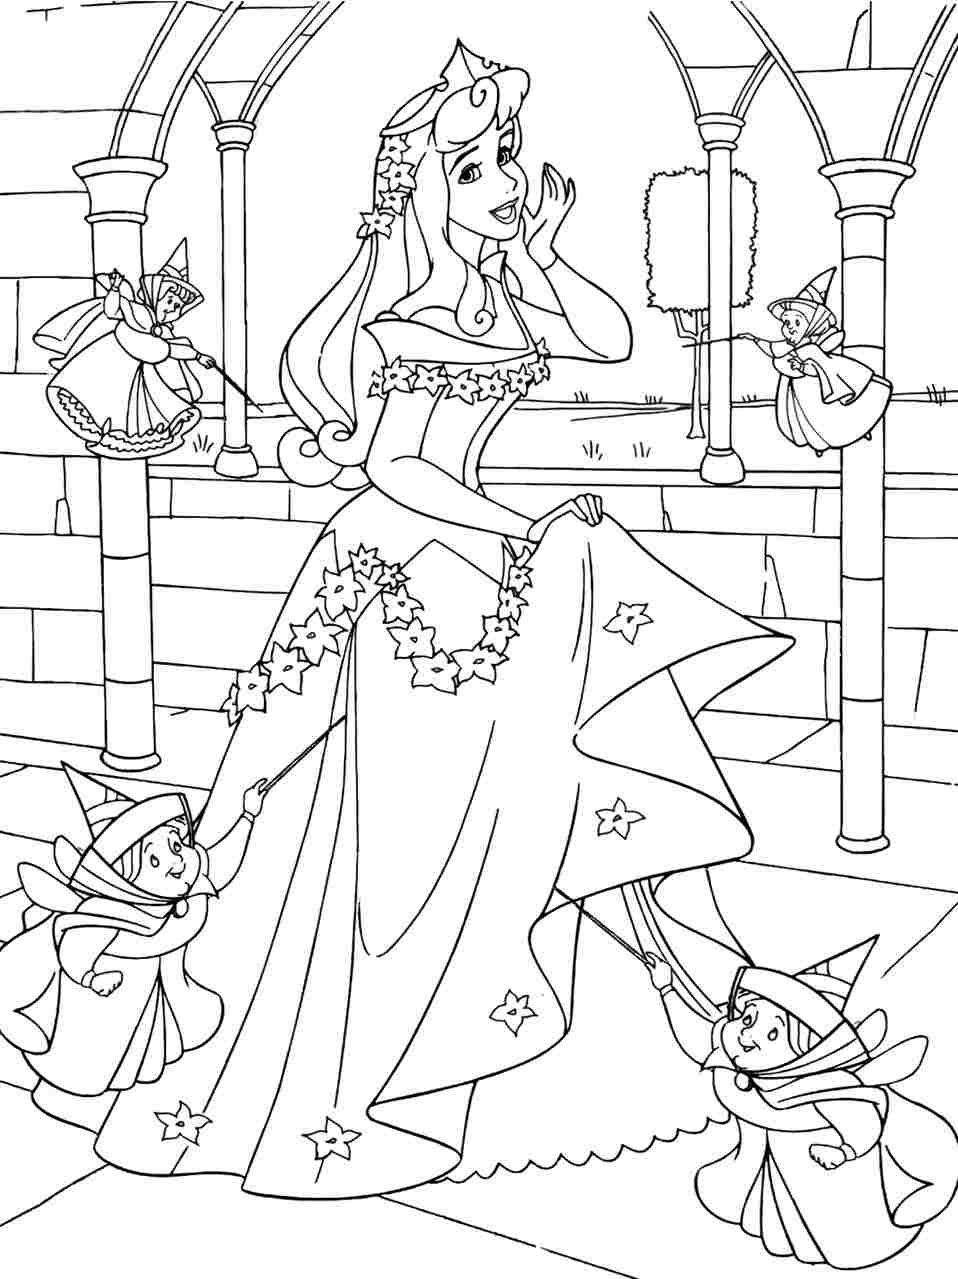 Sleeping Beauty Coloring Pages Print Disney Princess Sleeping